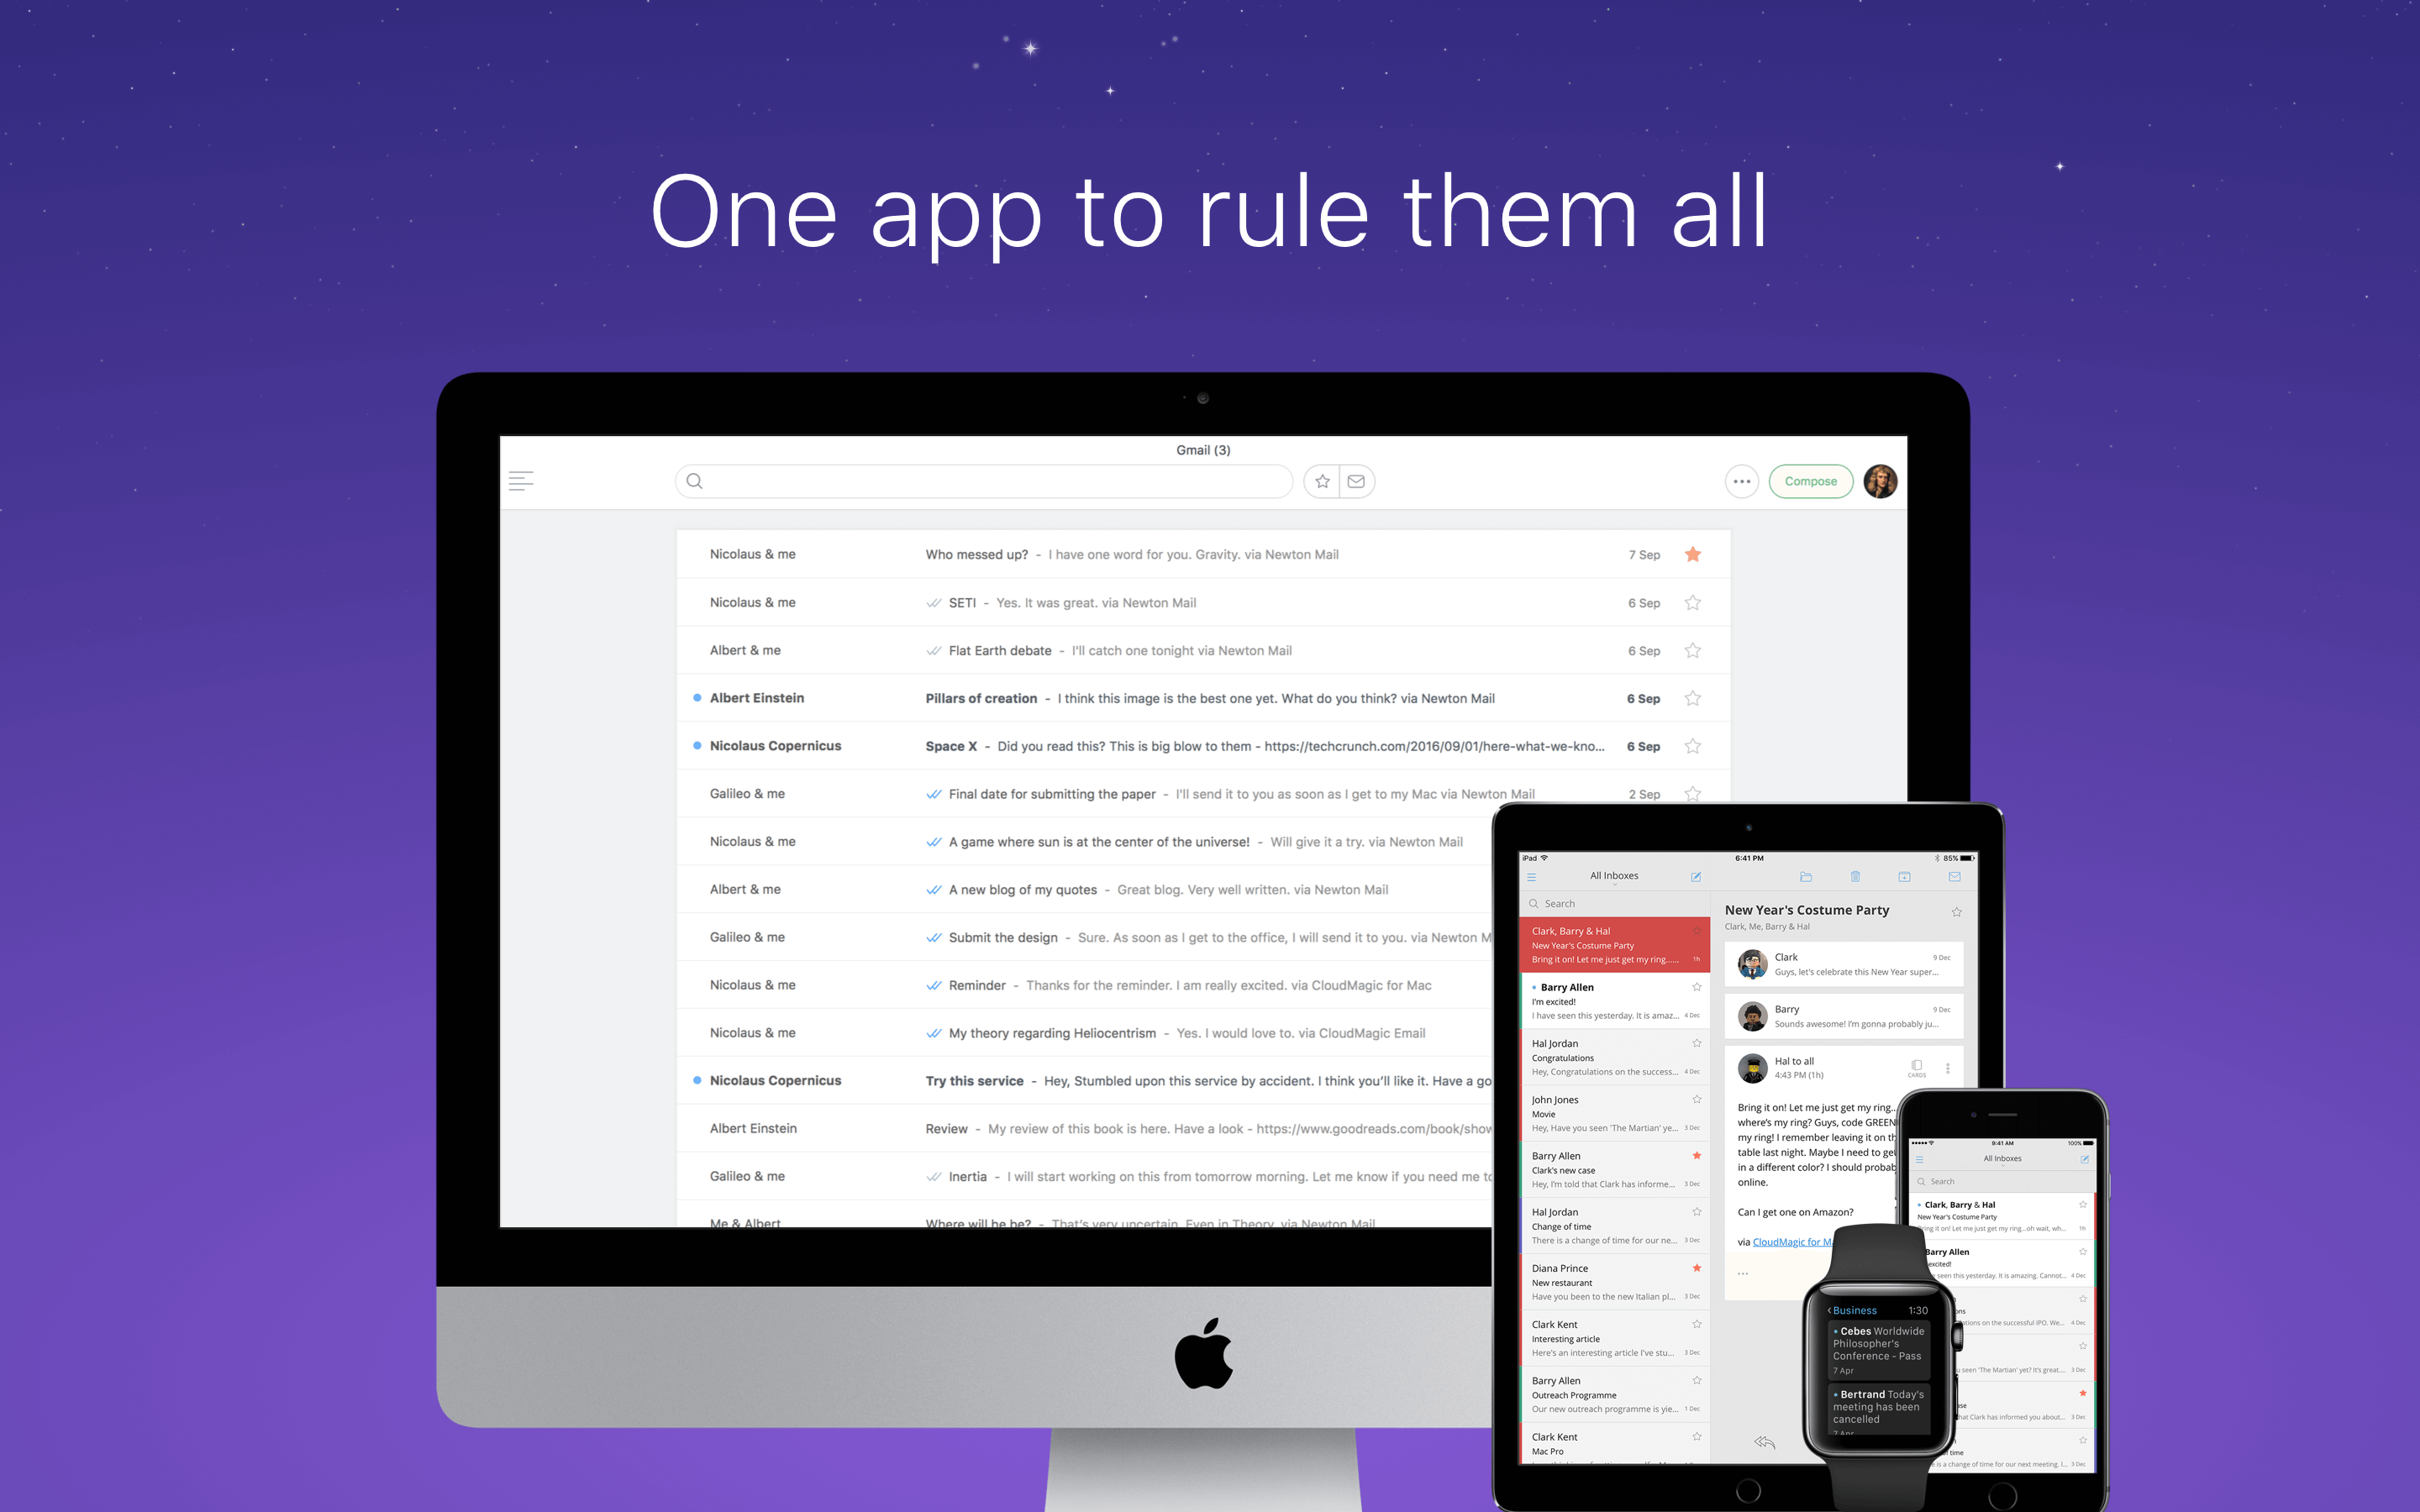 Email+on+all+device